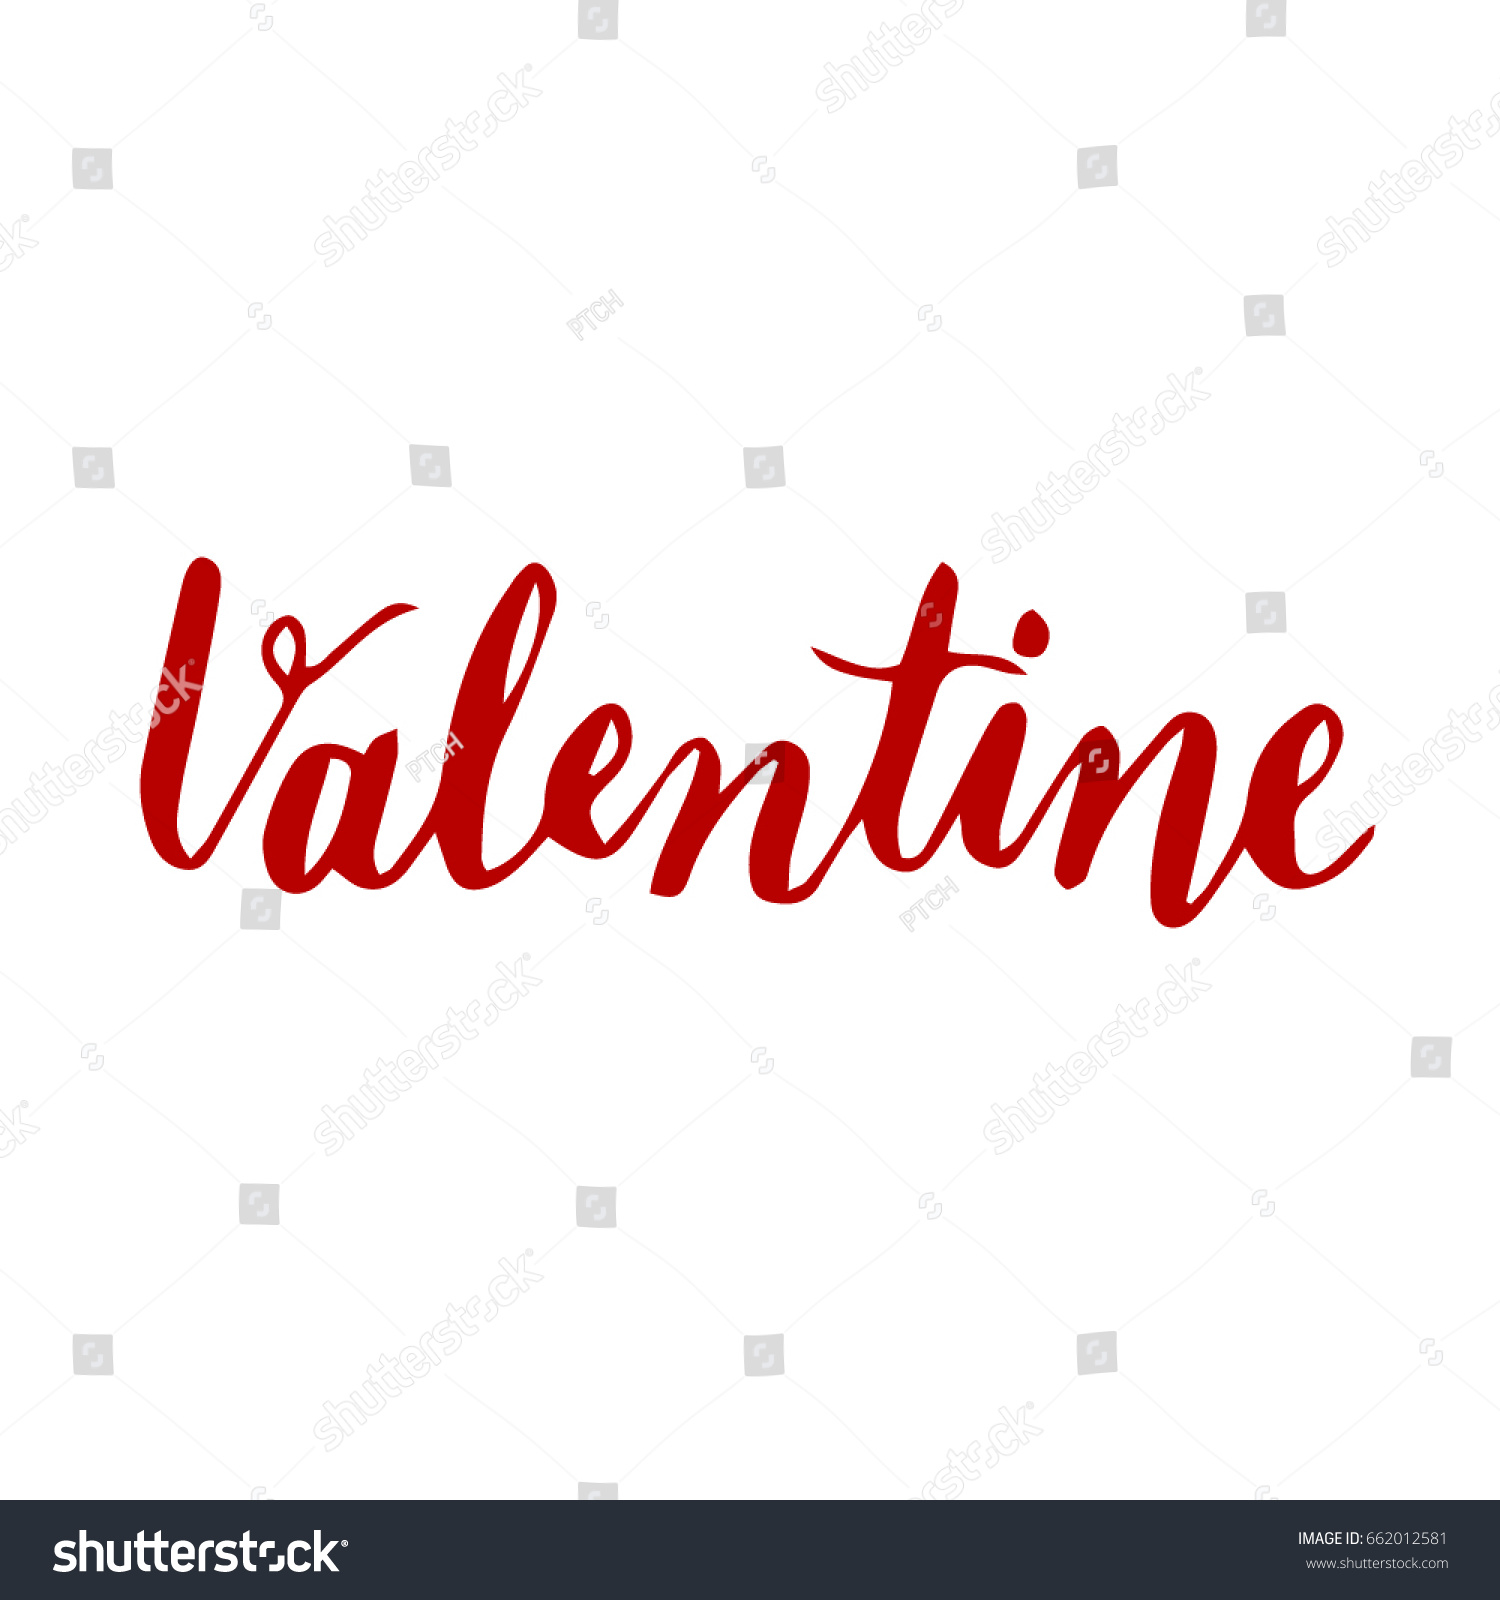 Valentine.Handwriting Font By Calligraphy Process With Color Background  That For The Letter Or Special